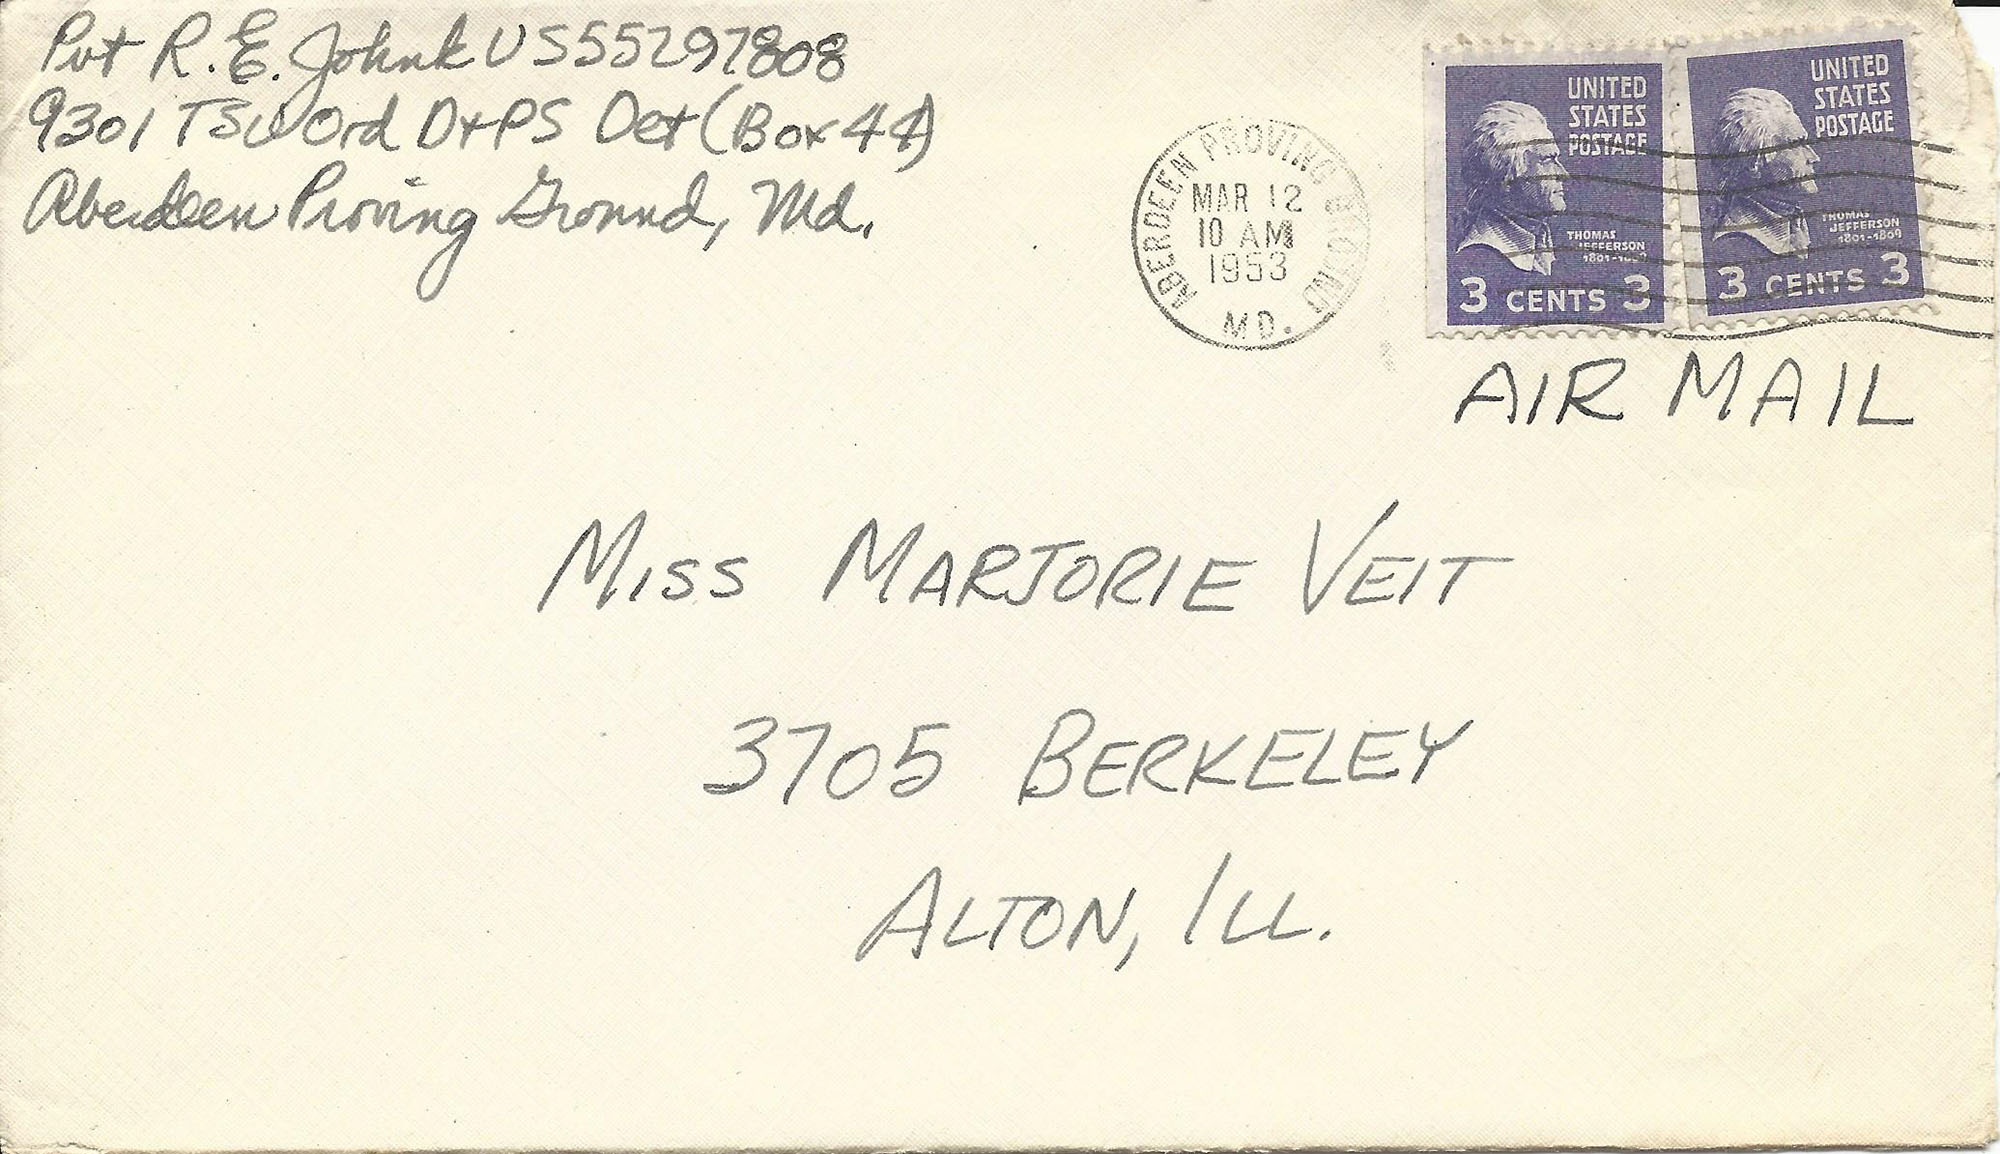 Mar. 11, 1953 (Bob) Envelope